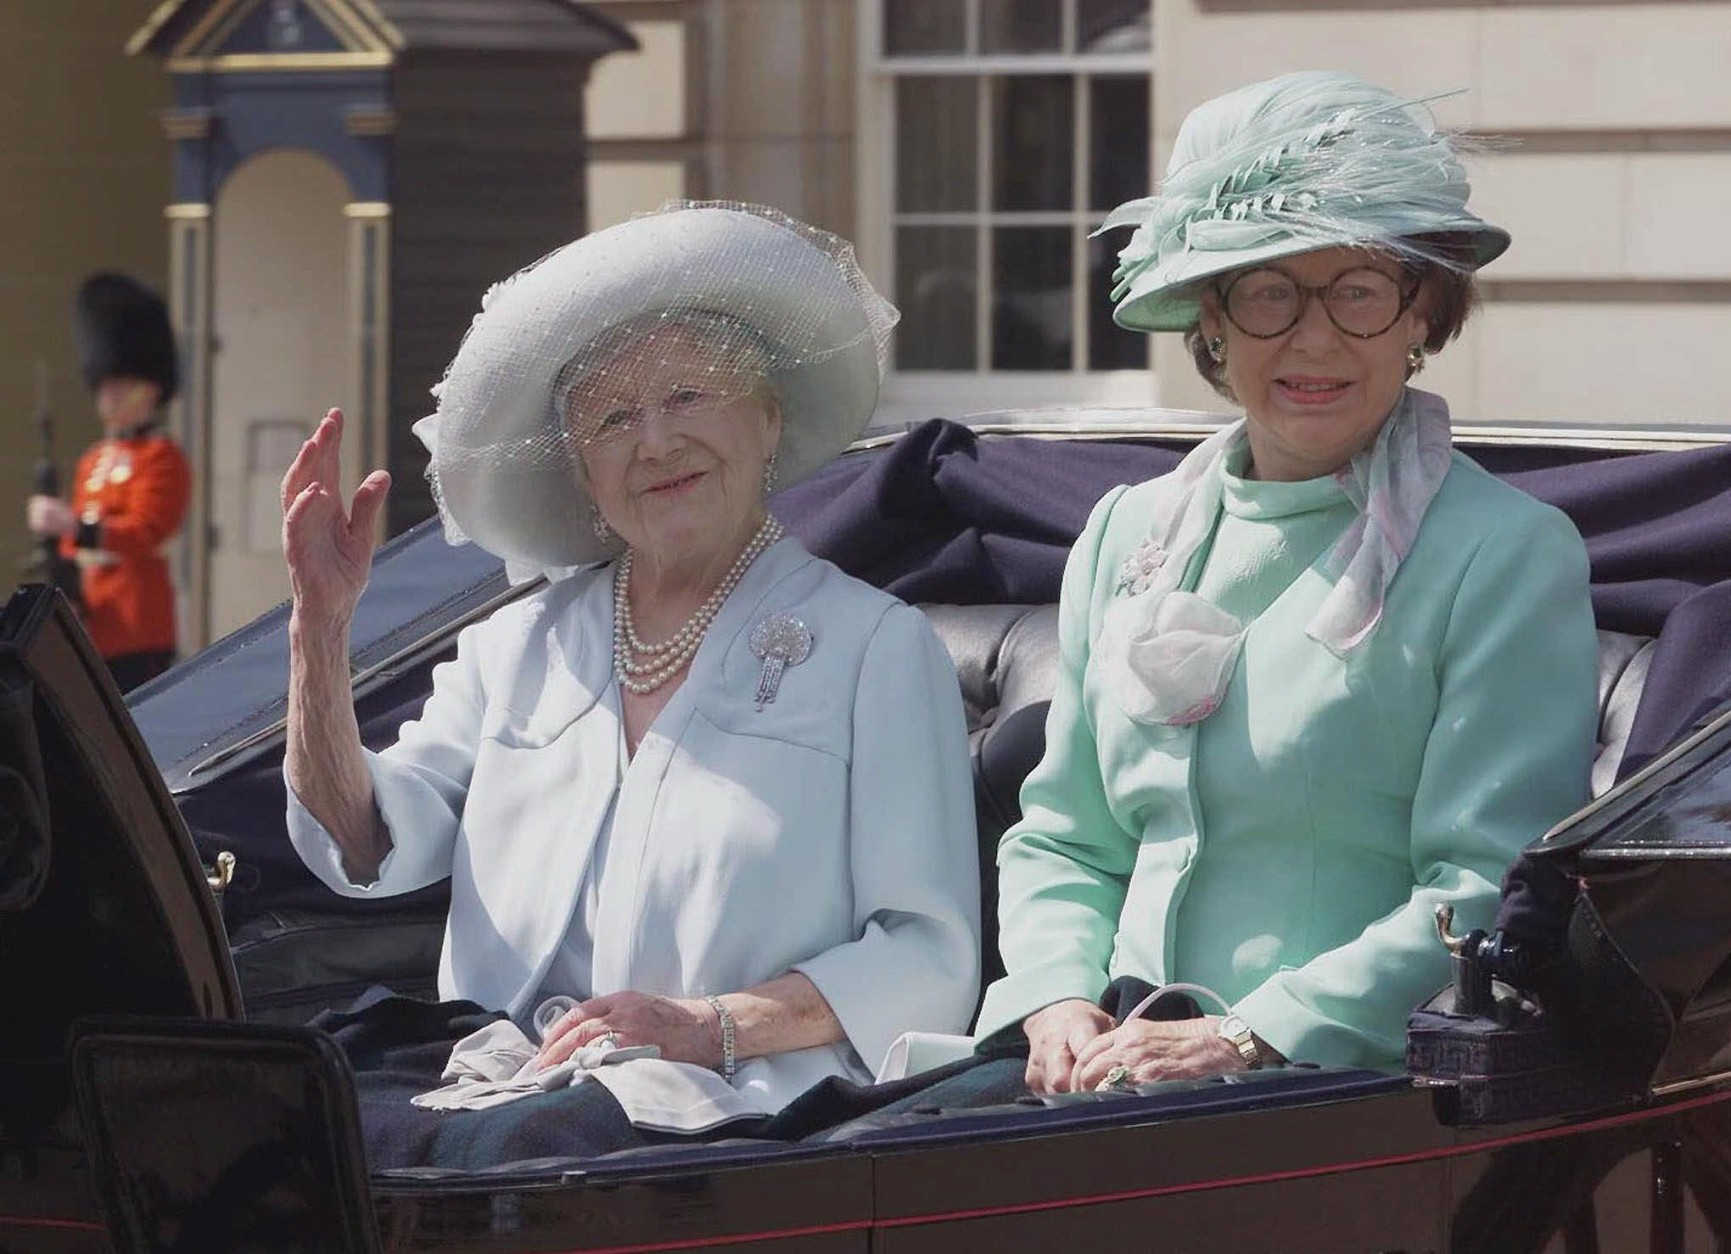 Britain's Queen Mother, left, and her youngest daughter Princess Margaret, sit in an open top horse drawn carriage as they leave Buckingham Palace, in central London, for the short ride to Horse Guards parade, where senior members of the Royal family gather for the annual Trooping the Colour ceremony, Saturday, June 17, 2000.  Queen Elizabeth II will take the salute at the military parade on London's Horse Guards, marking the sovereign's official birthday. (AP Photo/Alban Donohoe, Pool)